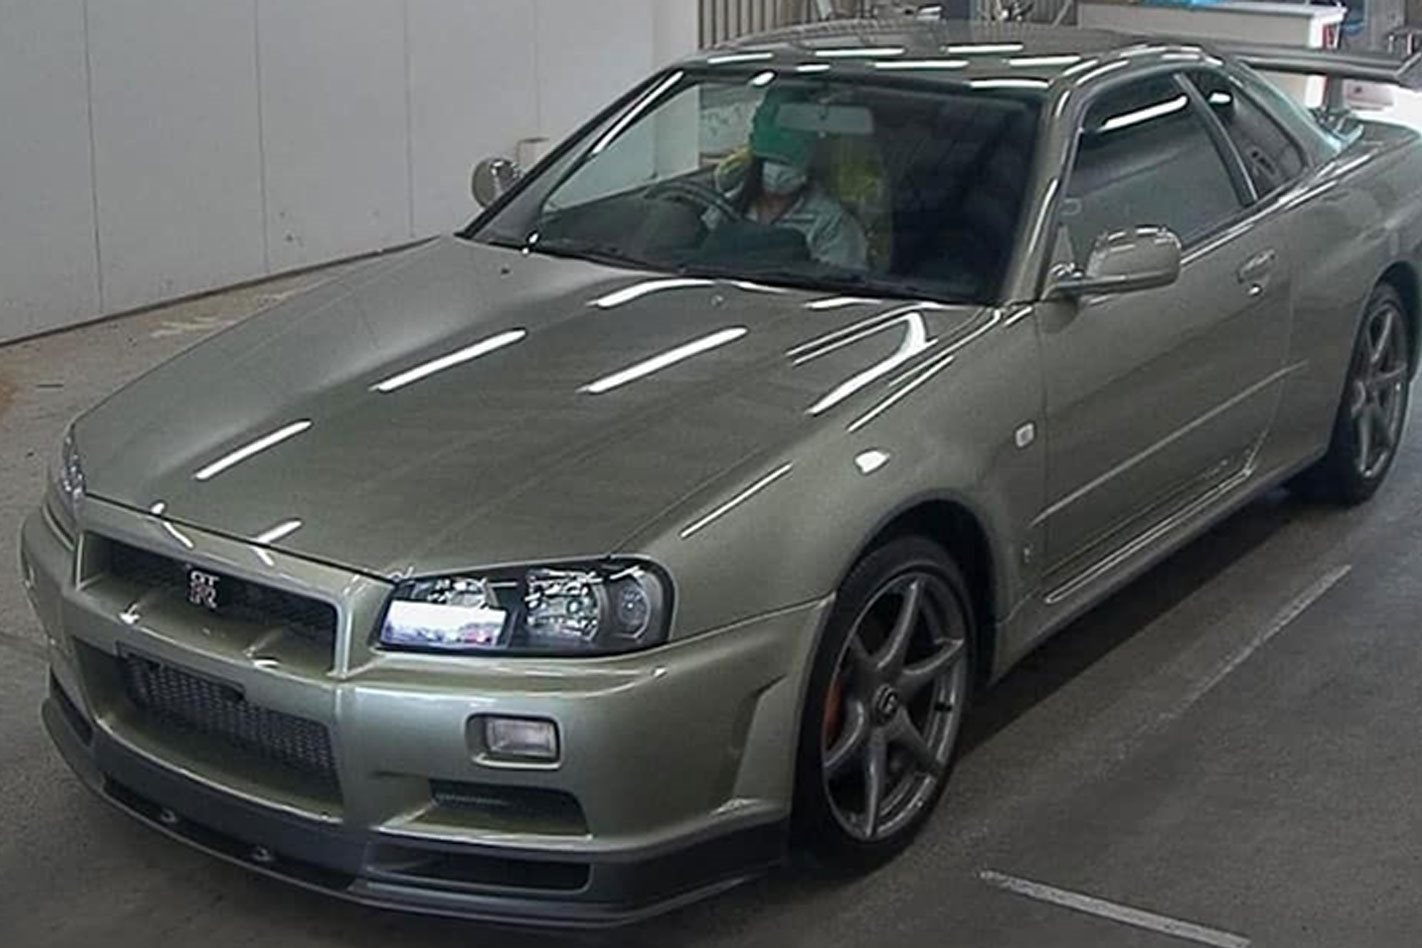 Nissan R34 Skyline Gt R Sells At Auction For Truly Stunning Price